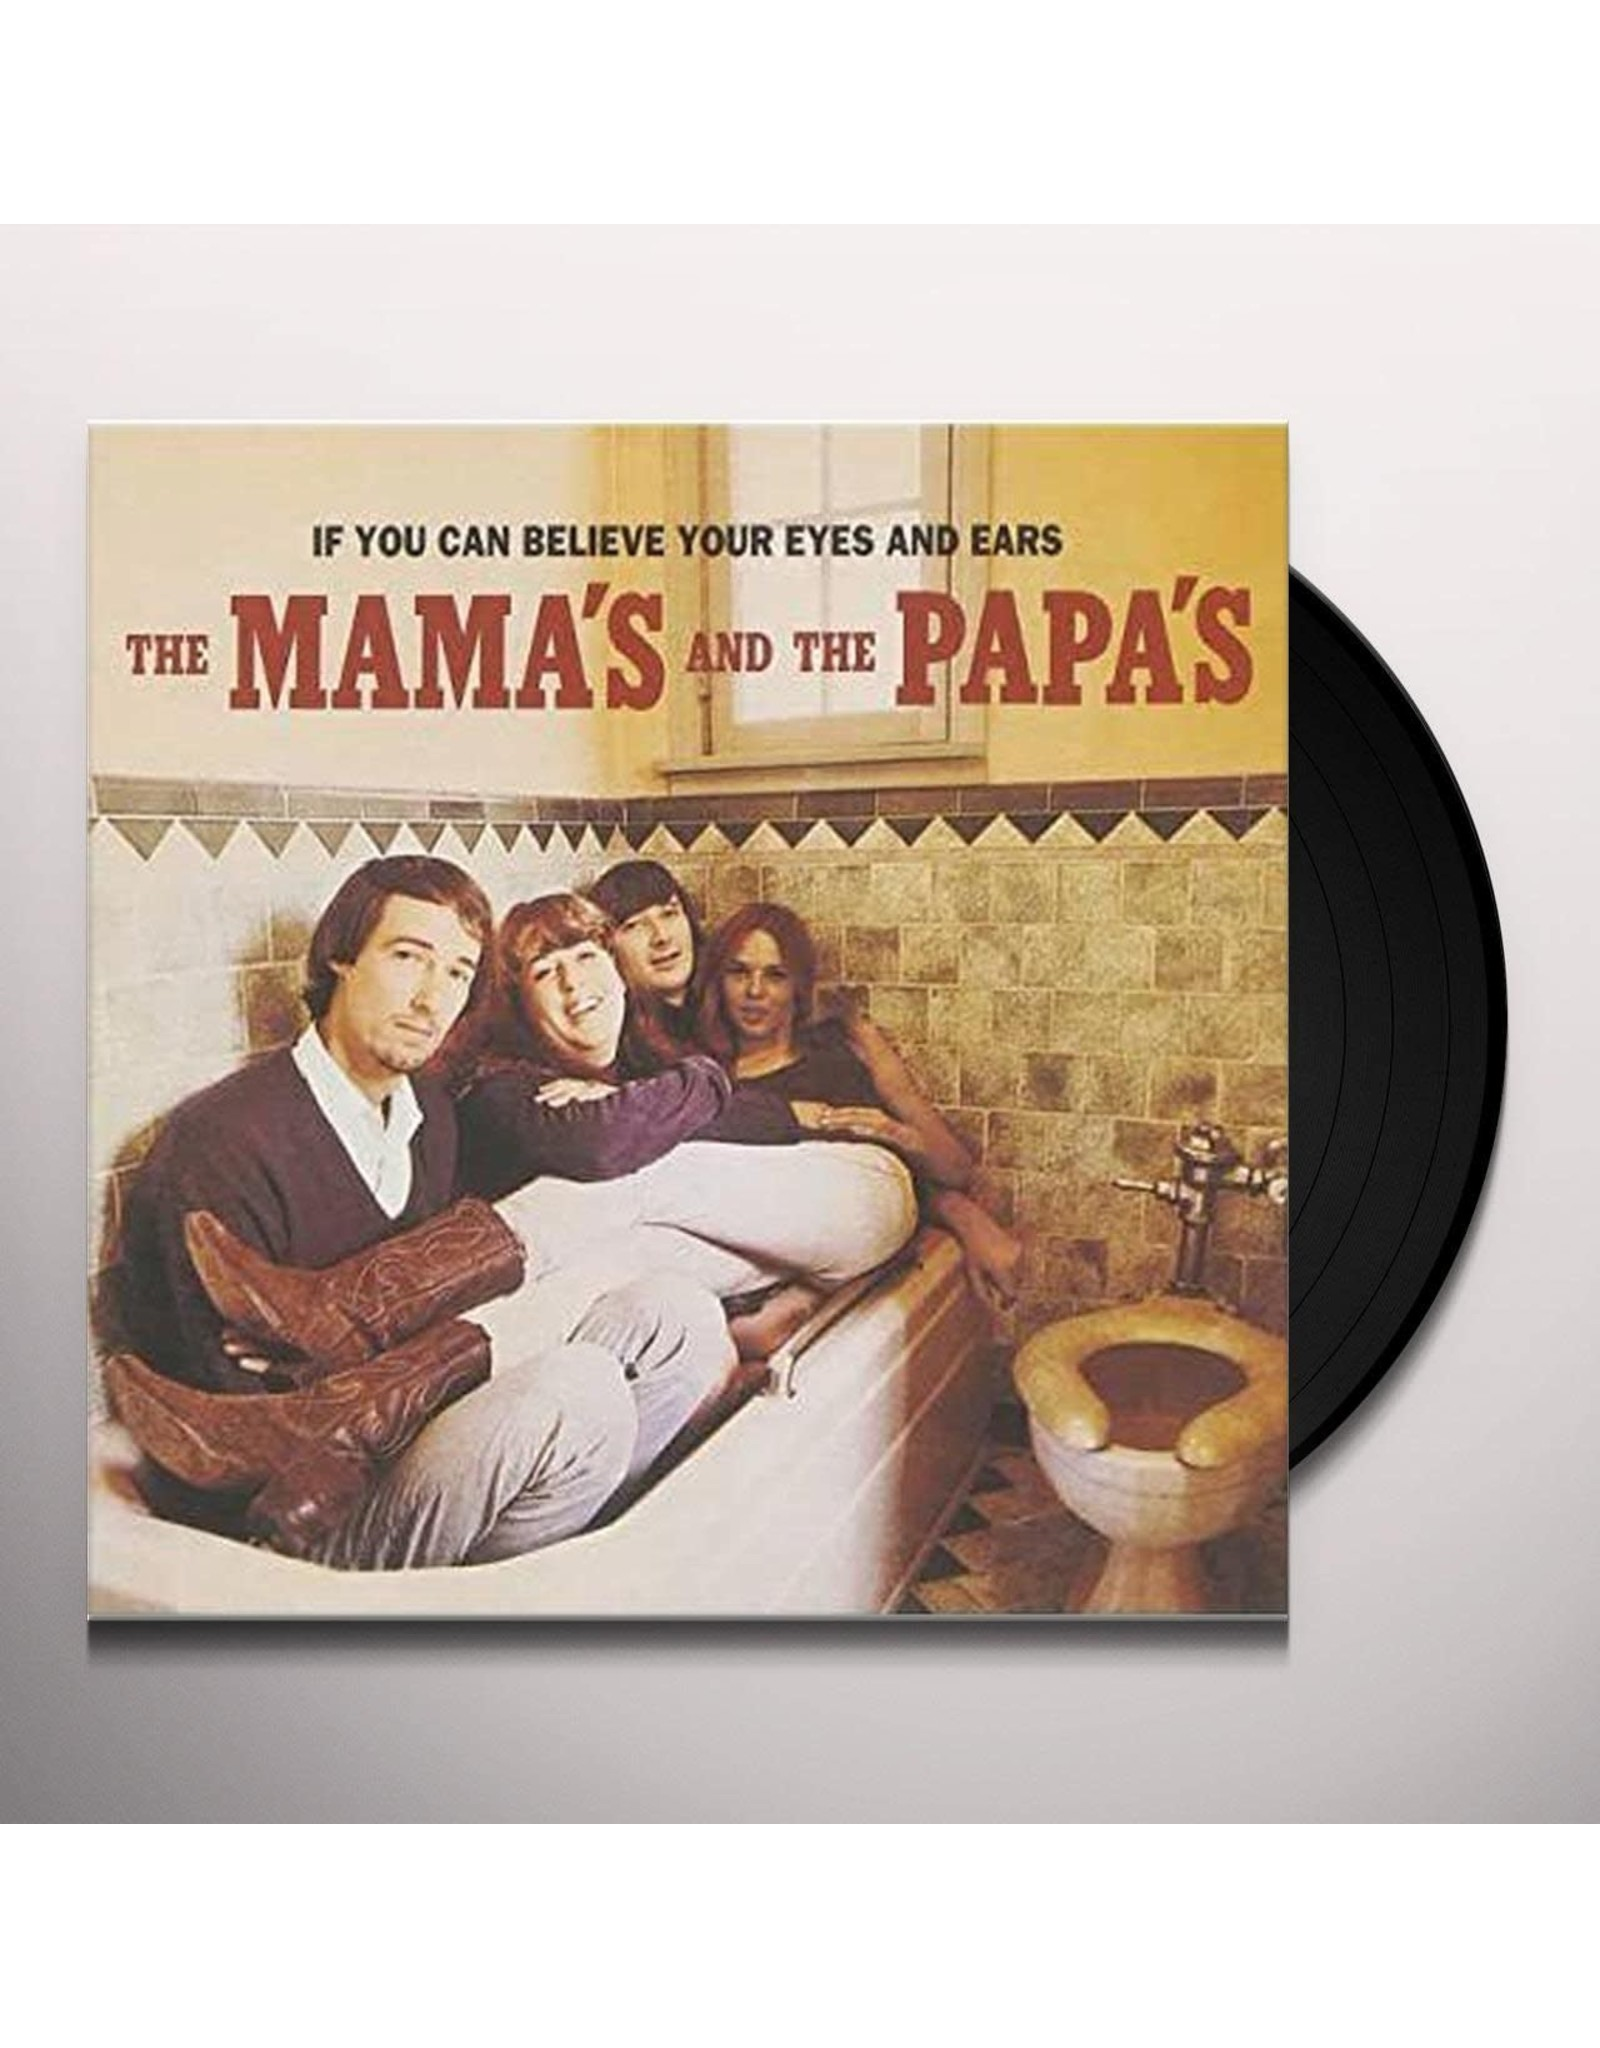 Mama's & Papa's - If You Can Believe Your Eyes and Ears LP